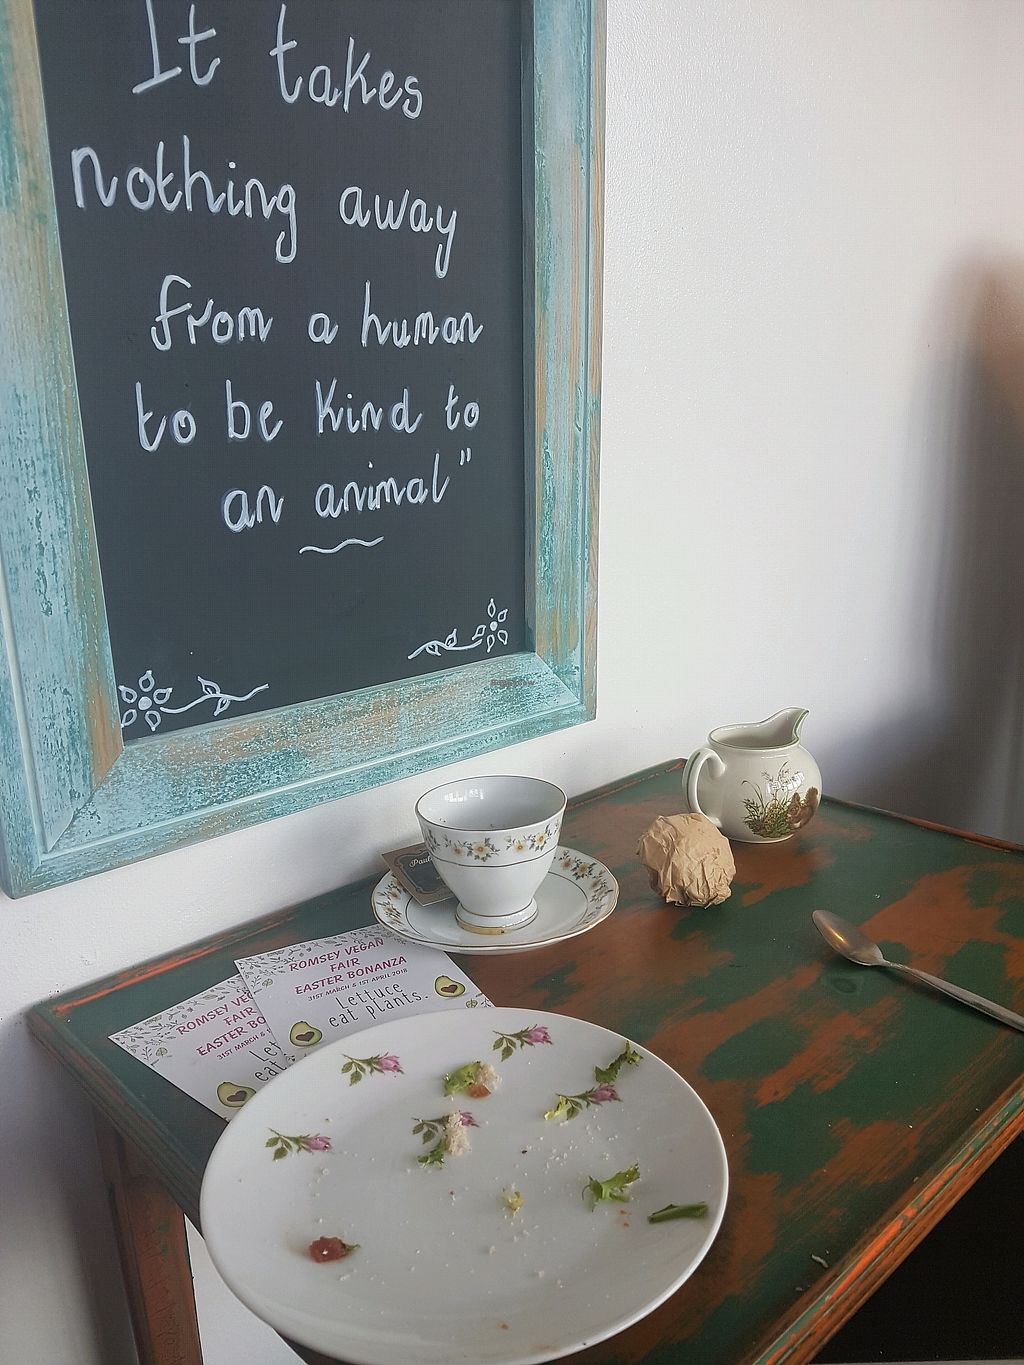 """Photo of Paula's Vegan Bakery  by <a href=""""/members/profile/Orlagh"""">Orlagh</a> <br/>An empty plate and inspirational quote... what more would you want? <br/> March 7, 2018  - <a href='/contact/abuse/image/102653/367720'>Report</a>"""